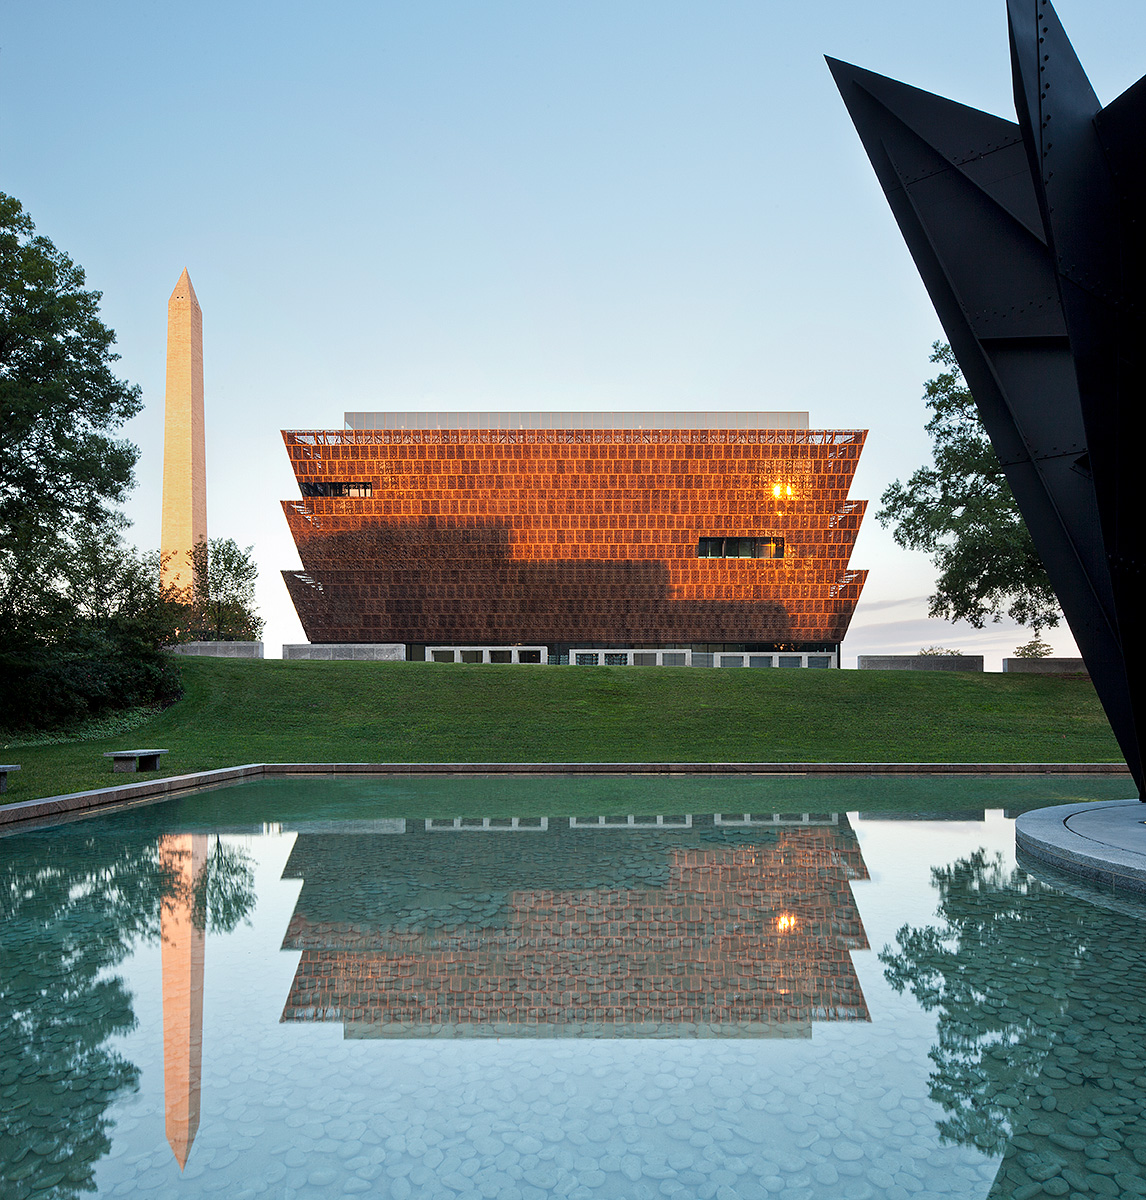 Smithsonian National Museum of African American History and CultureWashington, DCArchitect:  Sir David Adjaye / Adjaye Associates